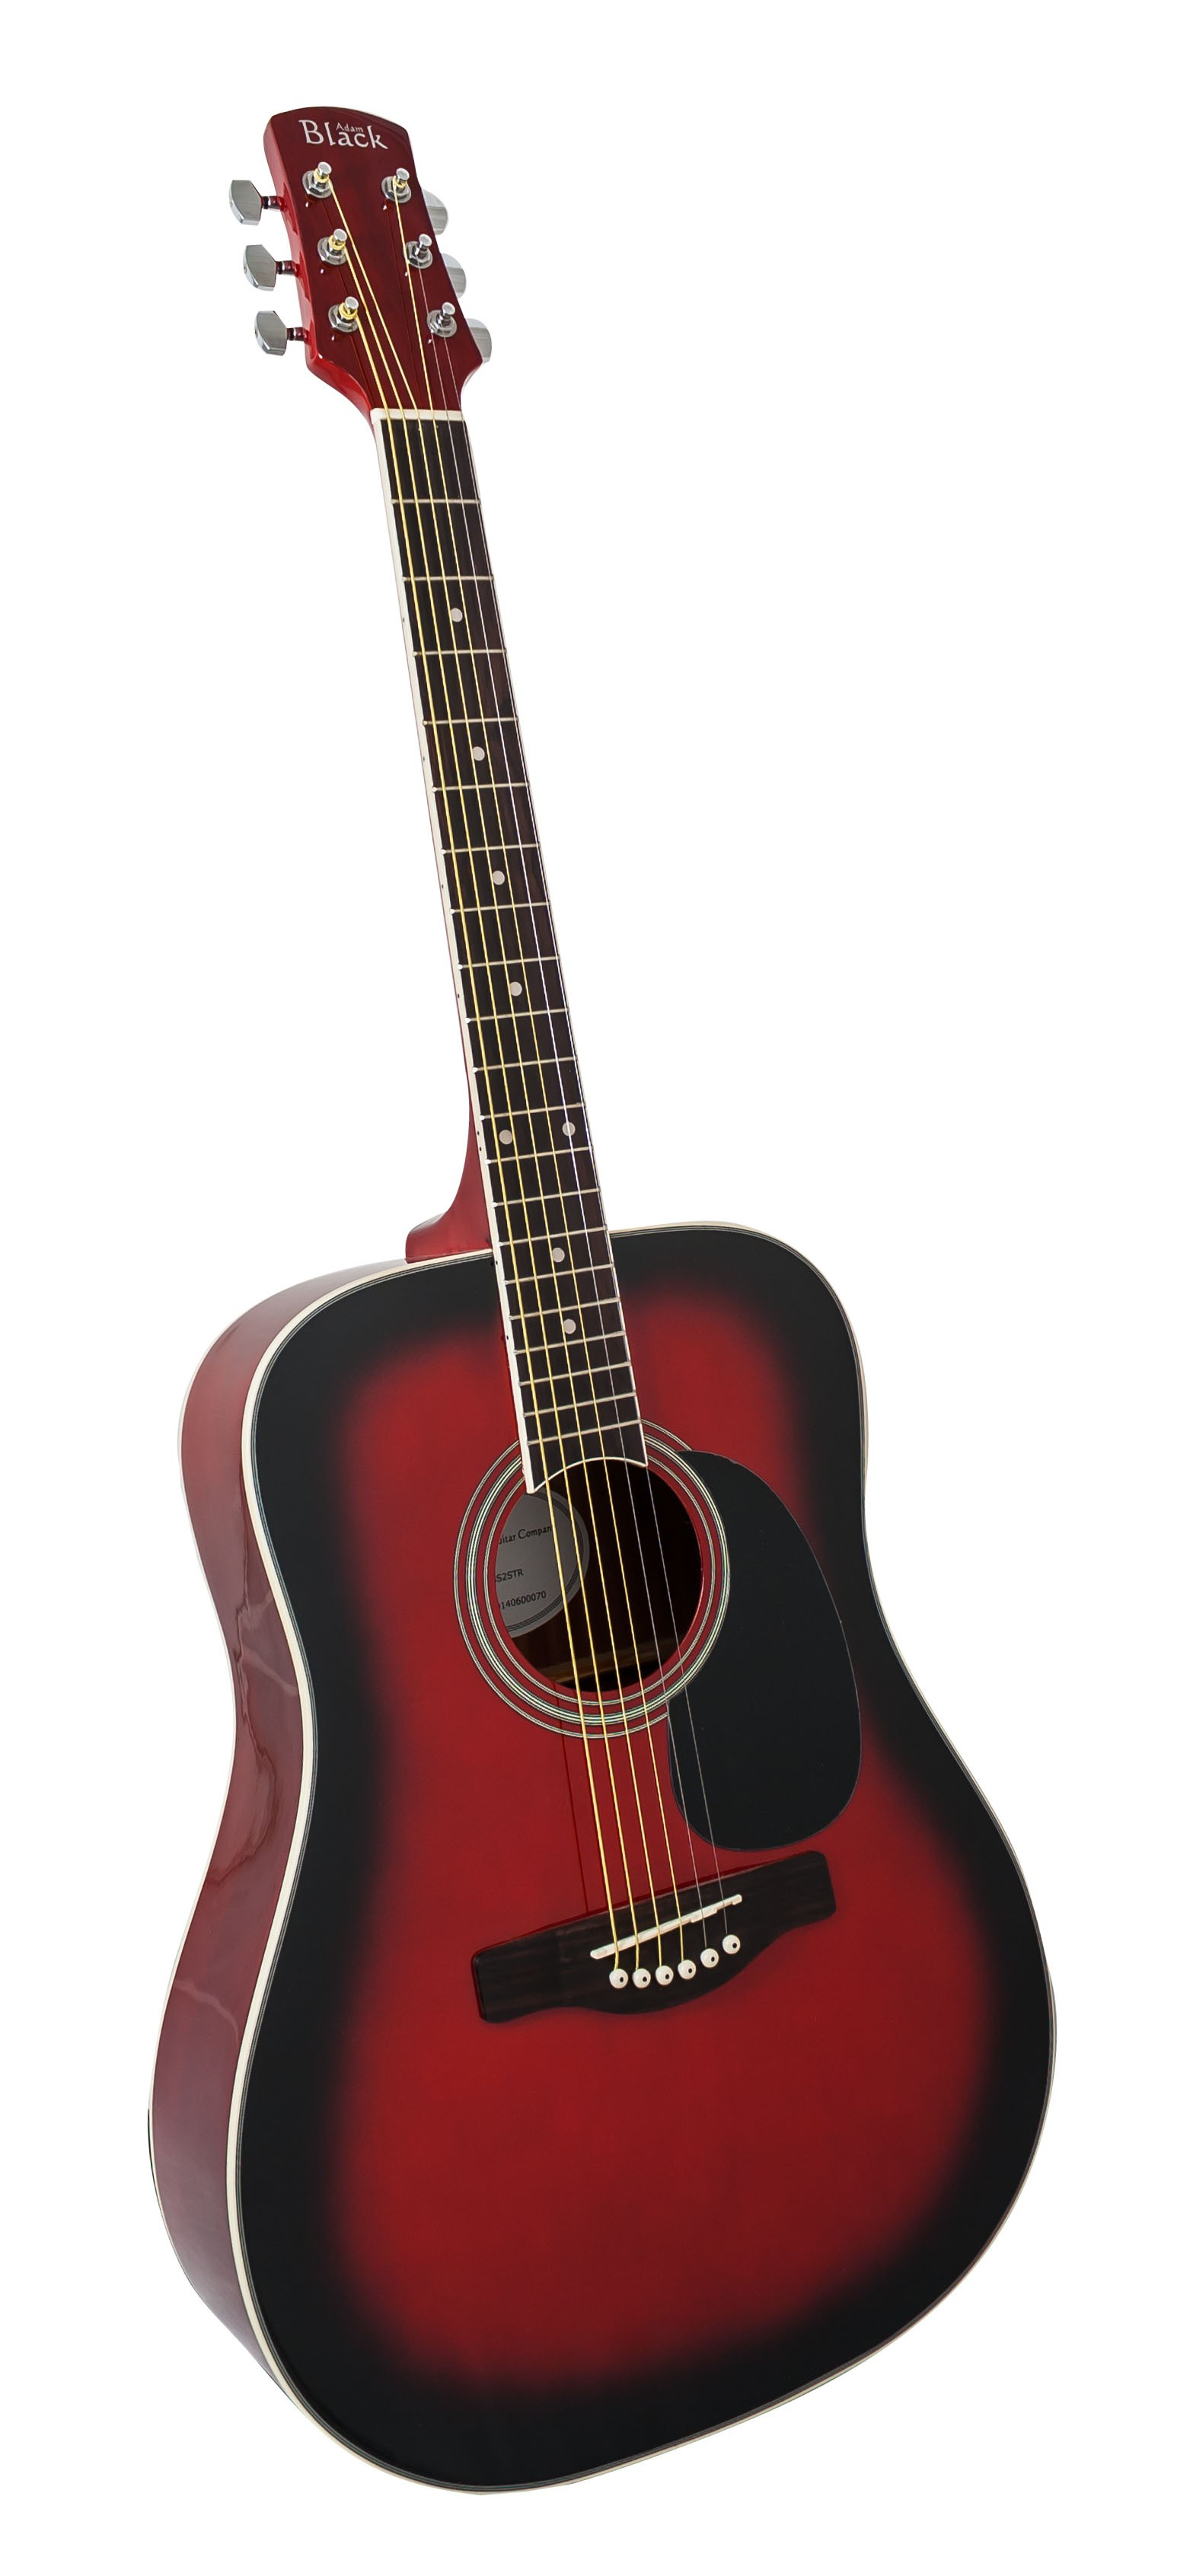 Adam Black S-2 - Trans Red